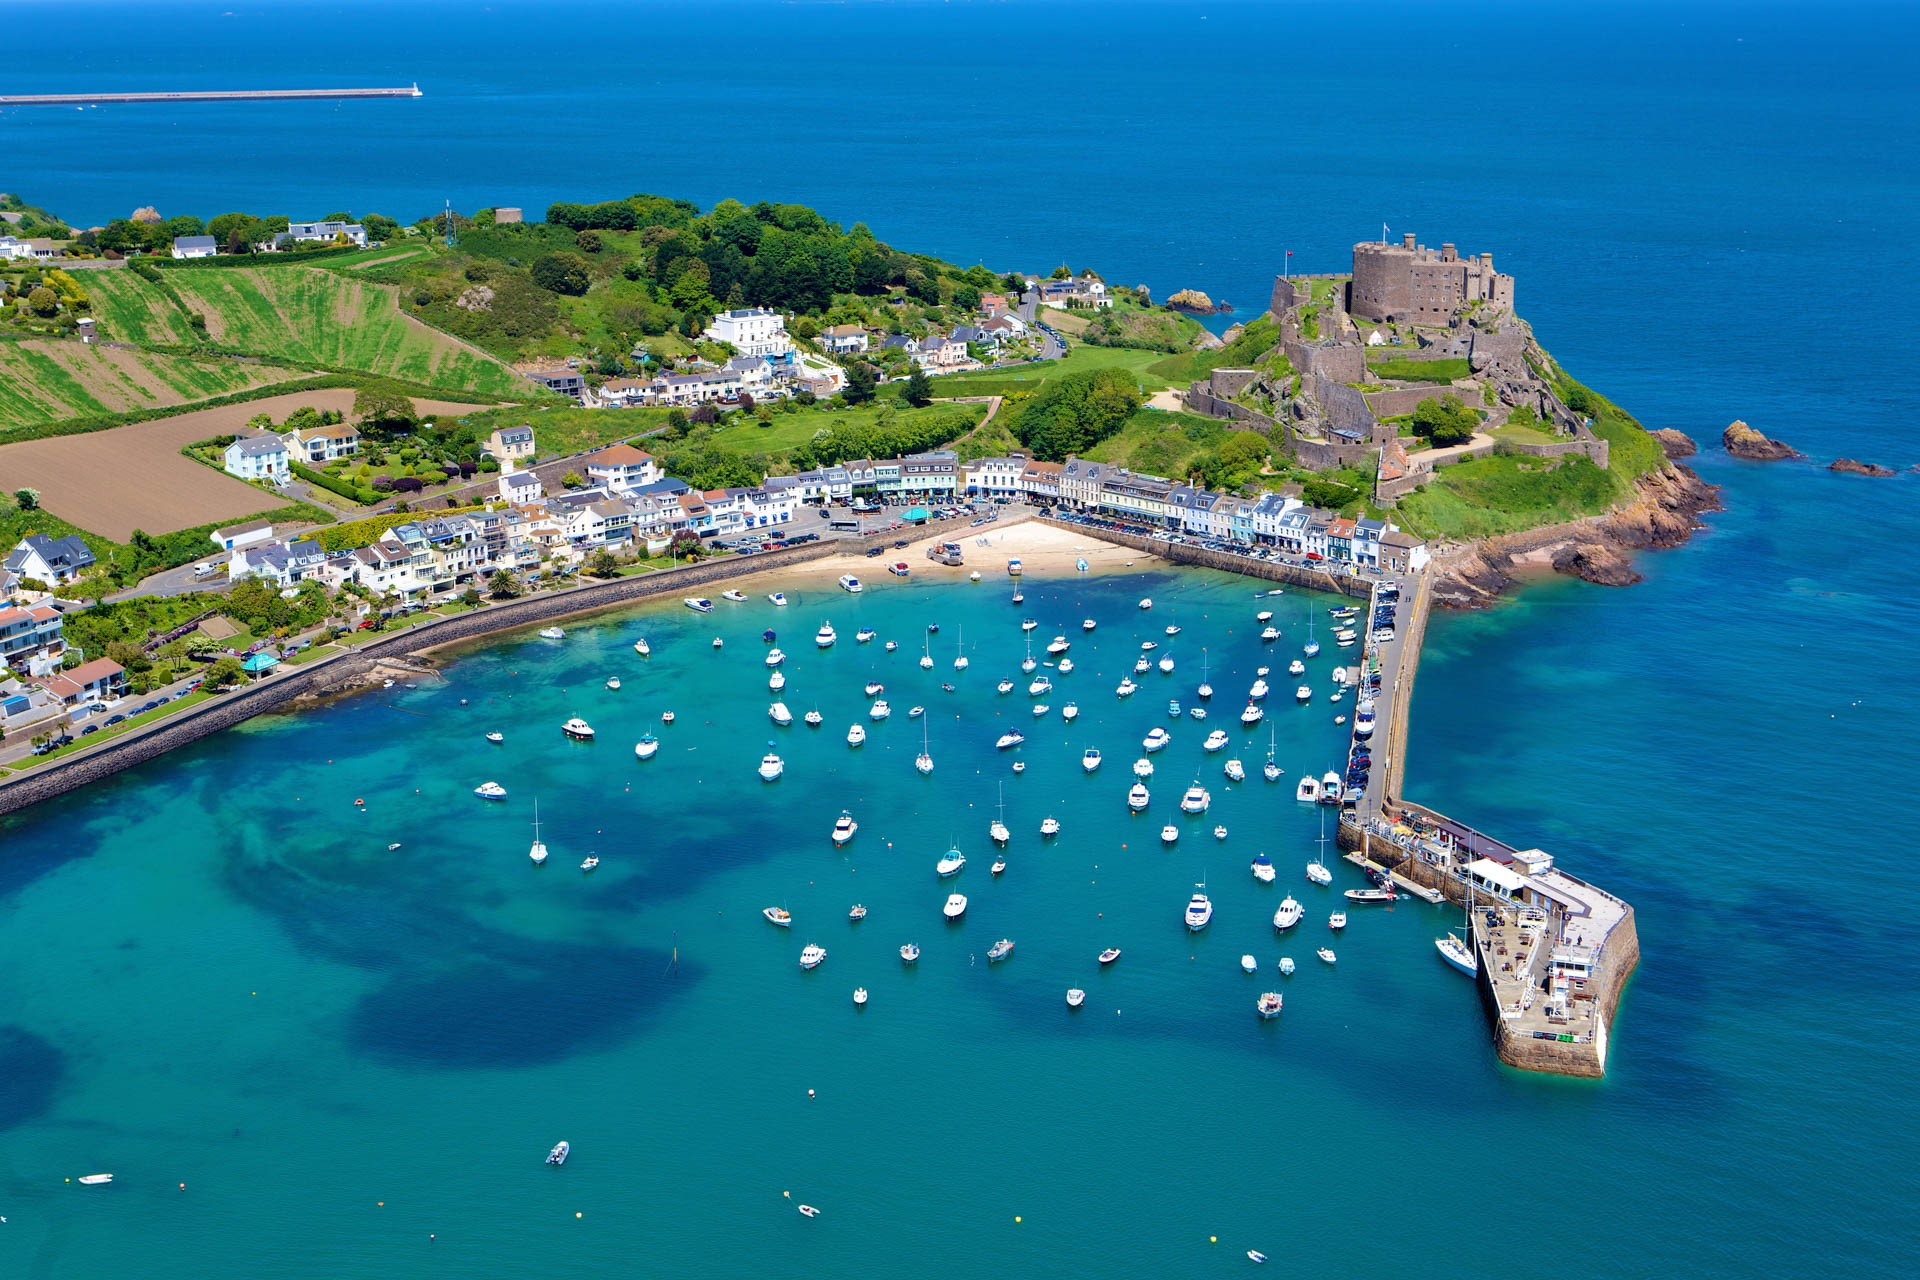 Aerial View of Gorey Harbour in Summer